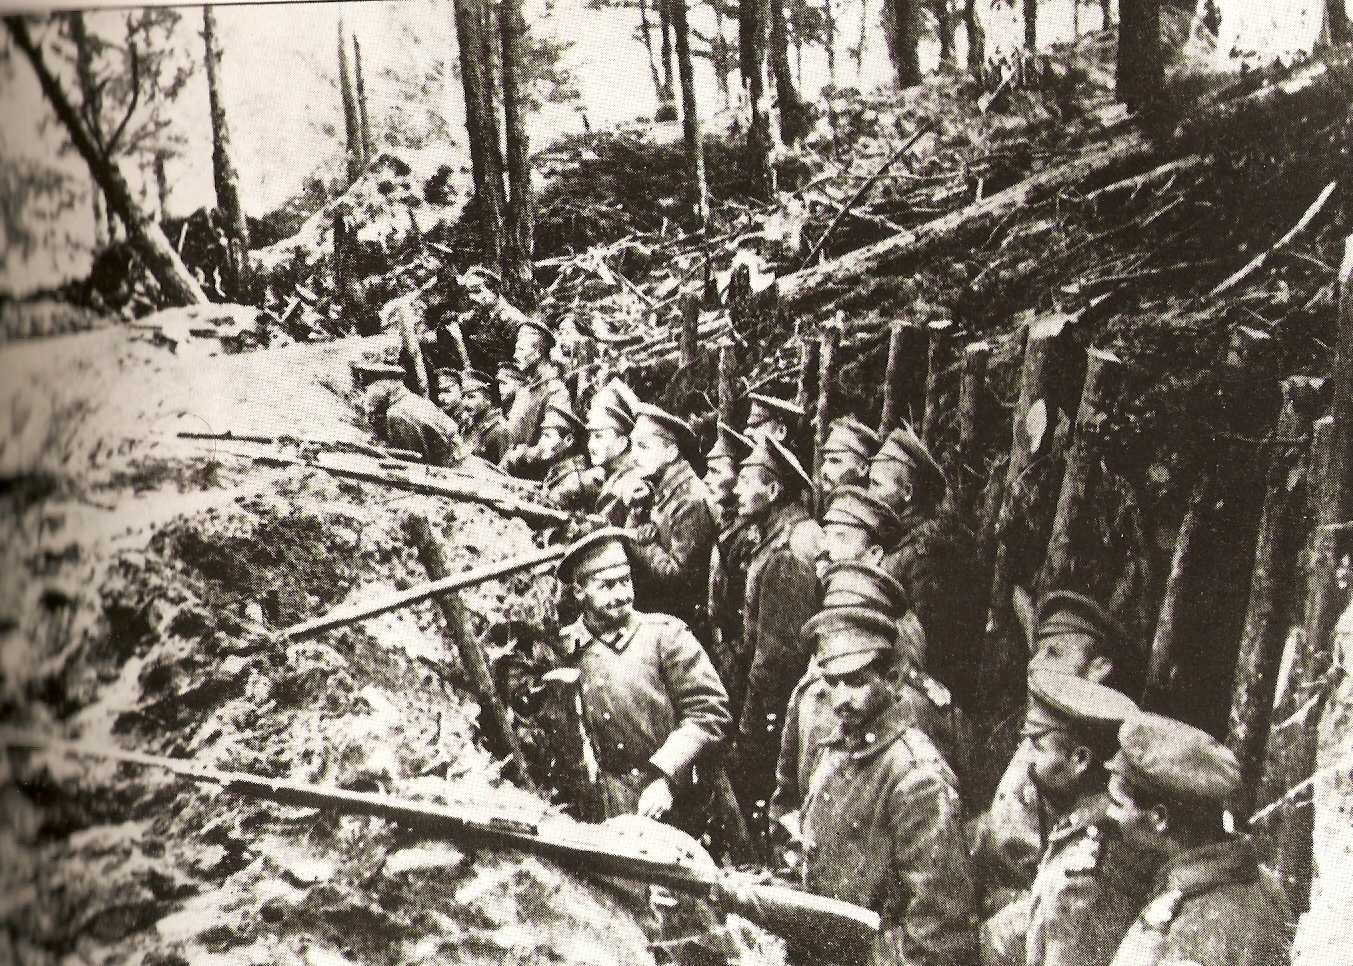 Russian troops in the Caucasus, date uncertain.